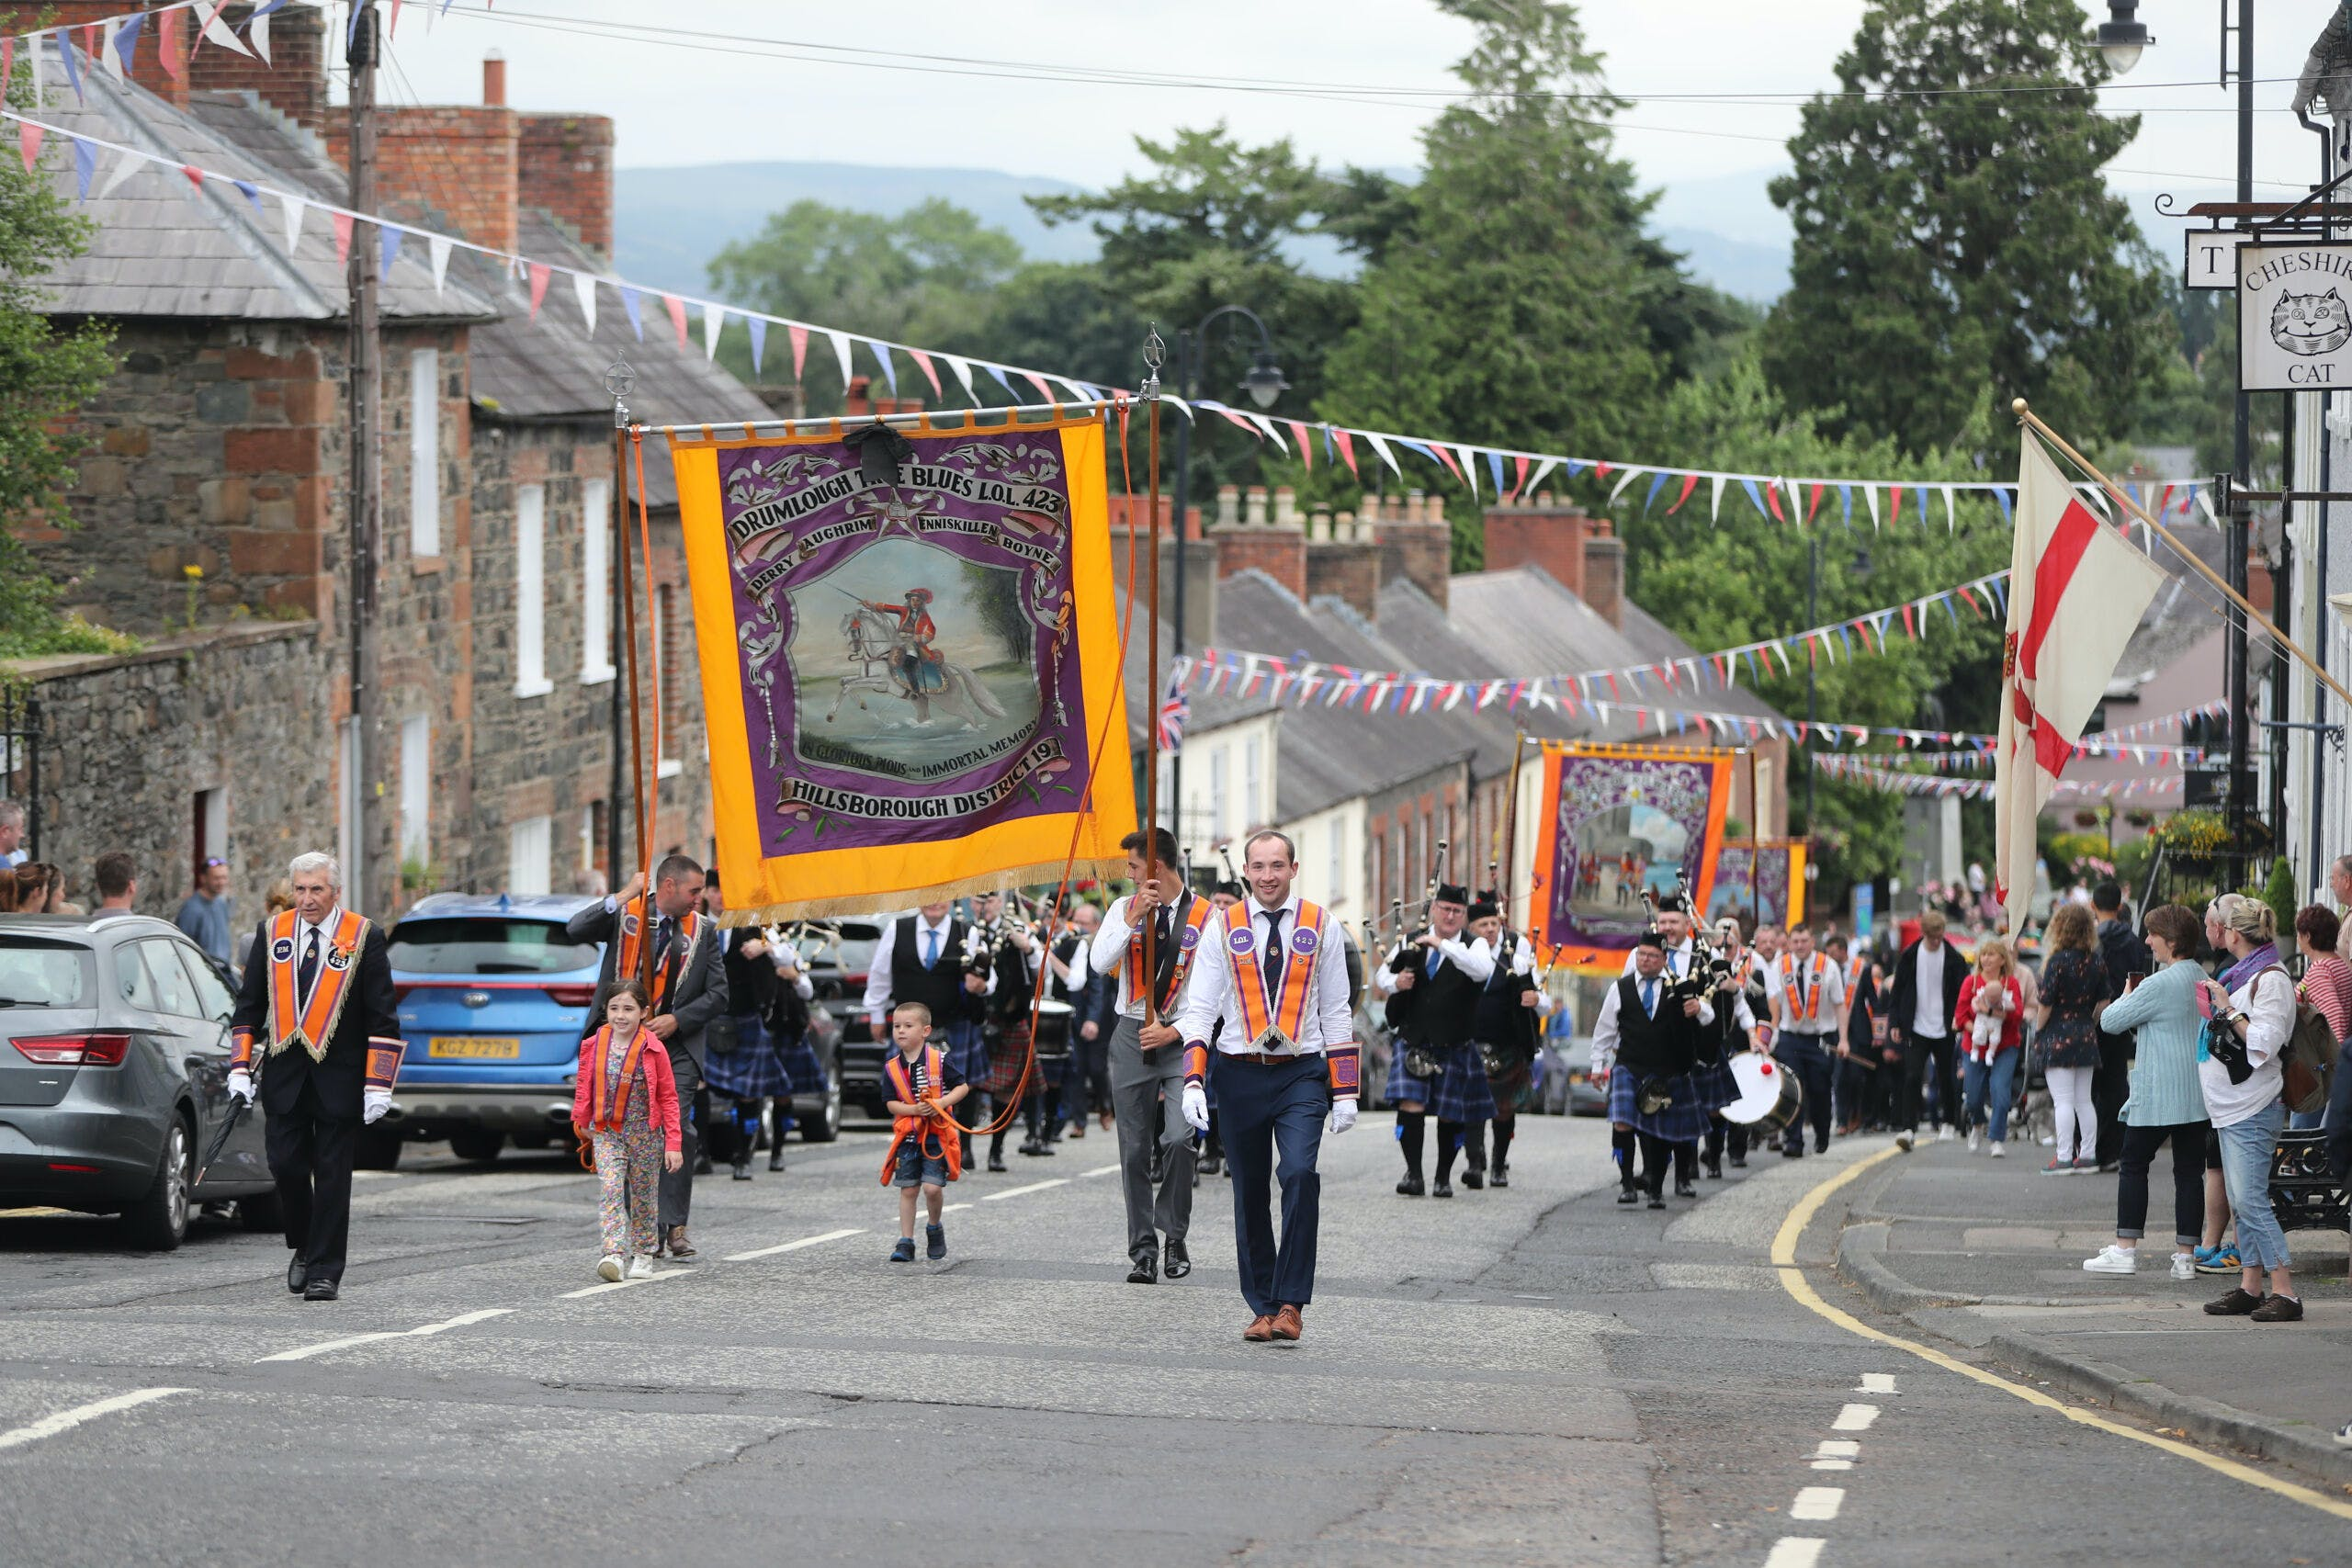 Orange parades in Northern Ireland have been further loaded this year